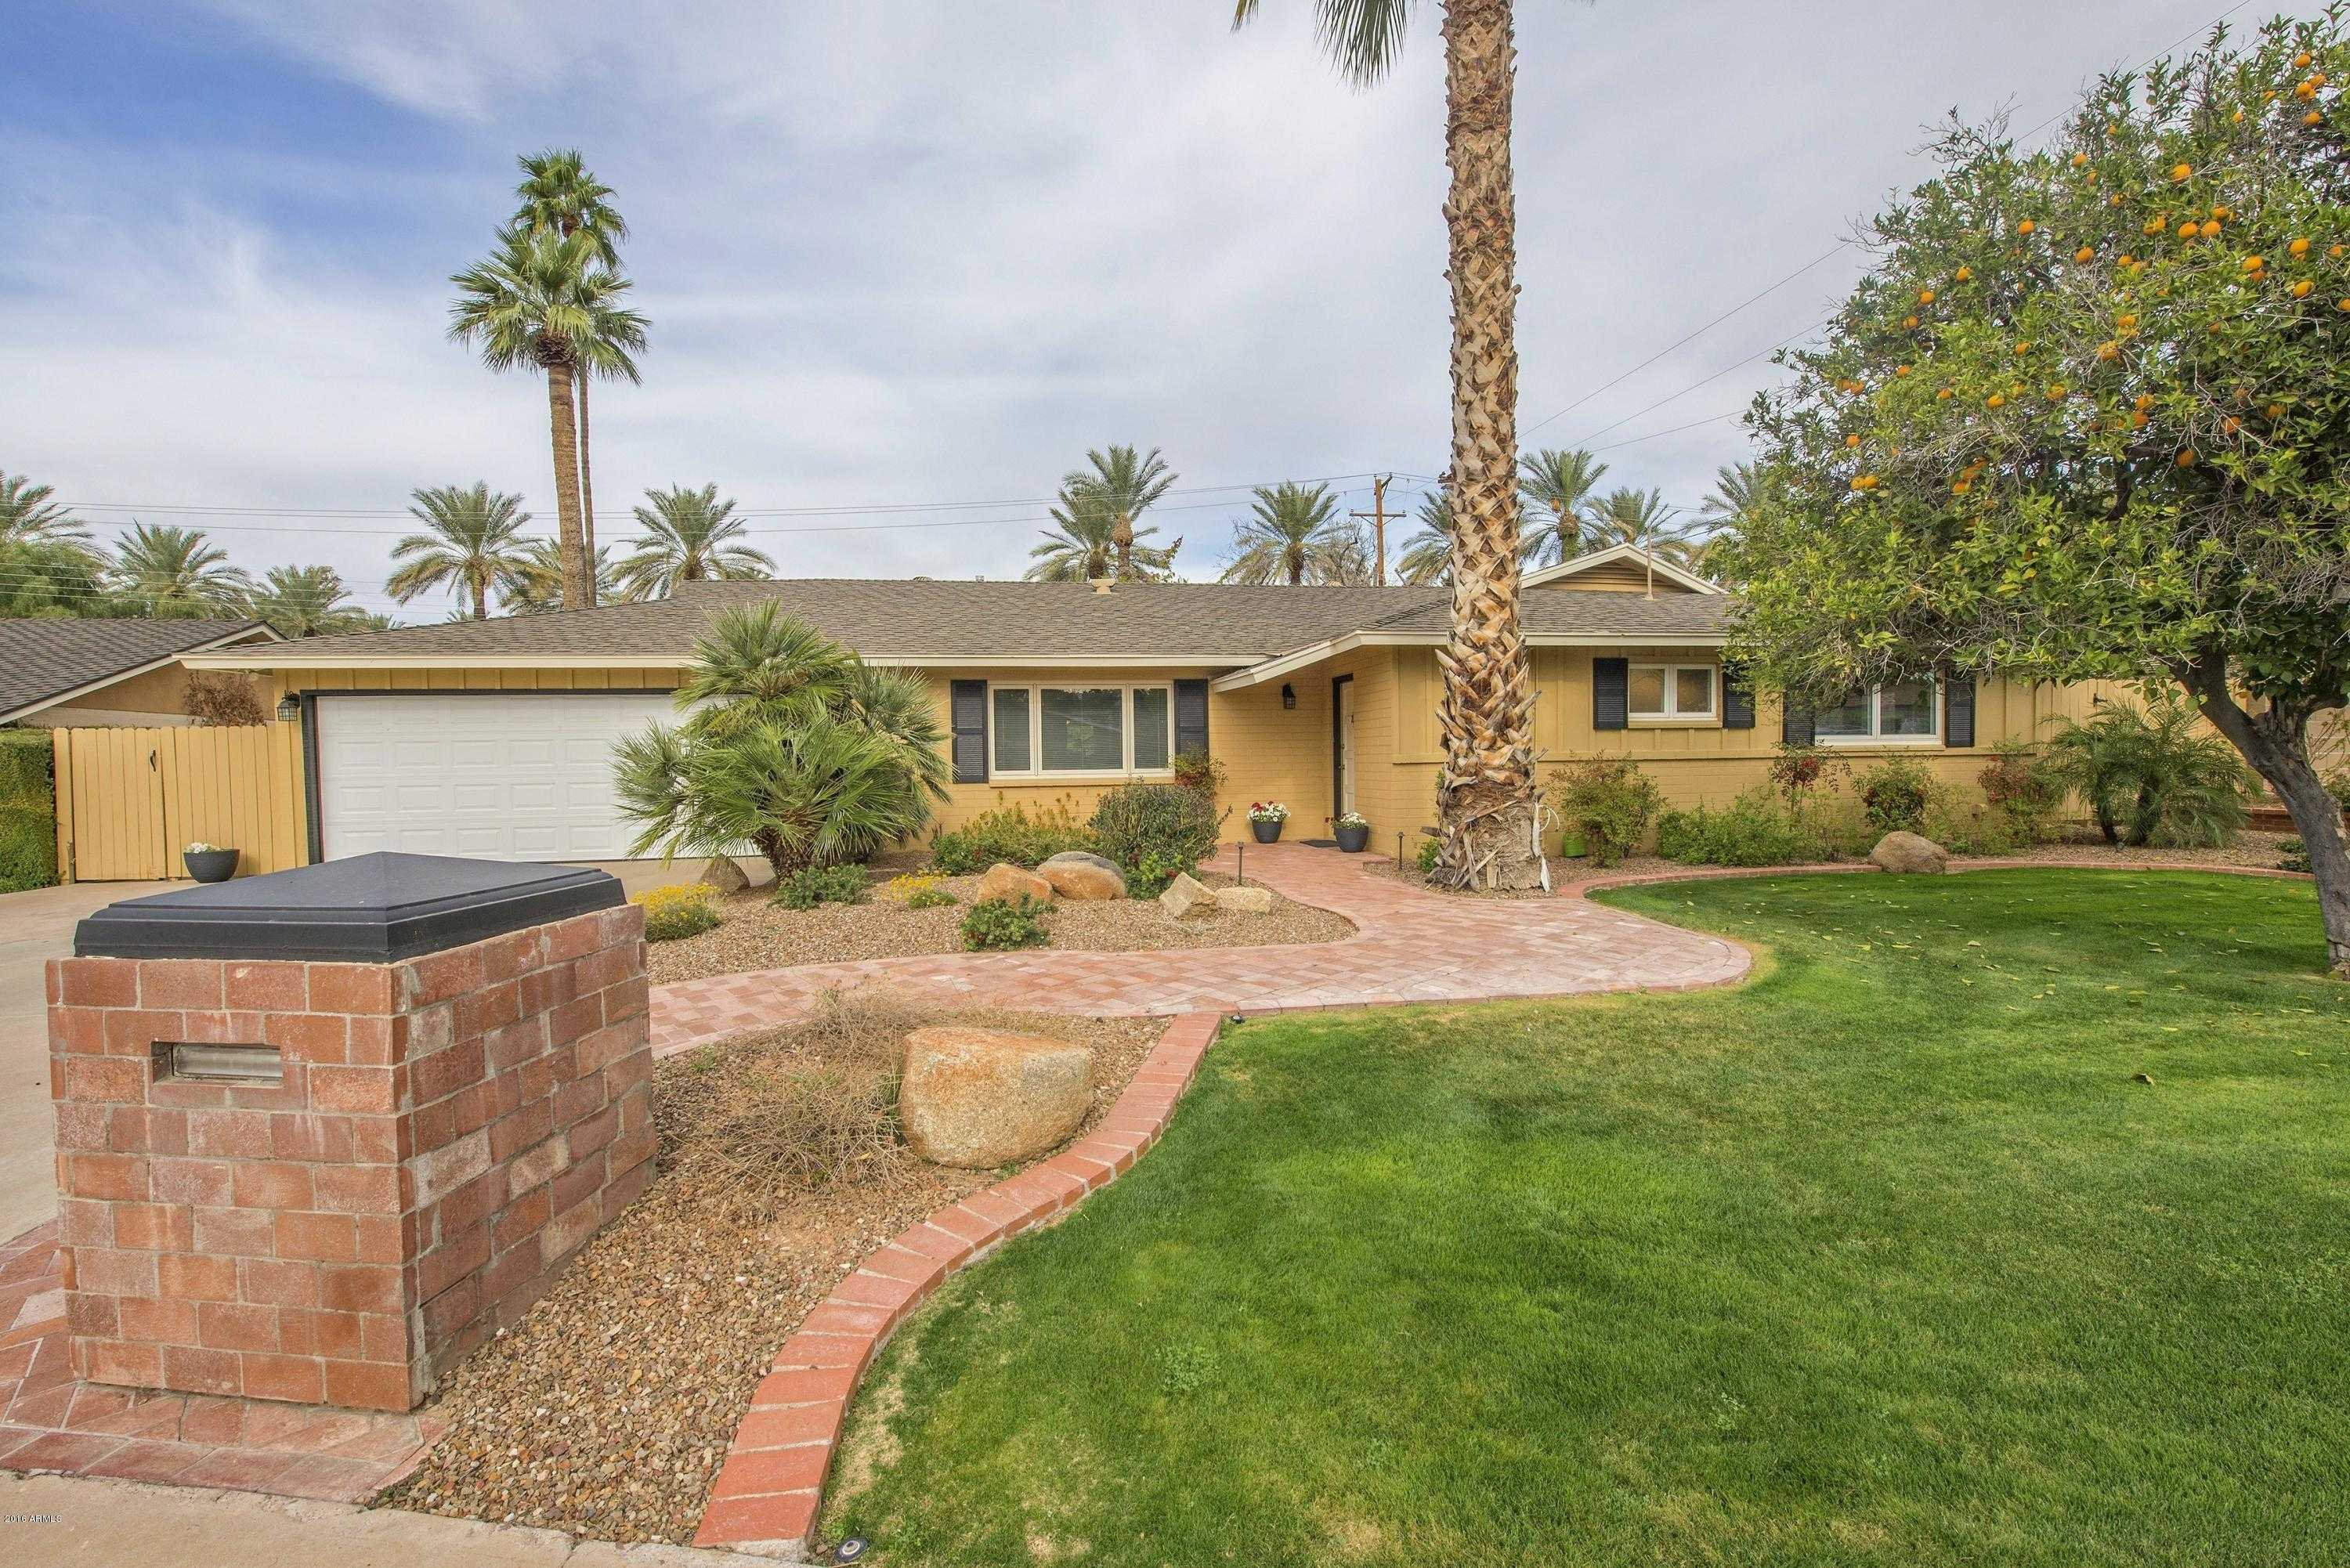 $4,750 - 4Br/3Ba - Home for Sale in Arcadia Meadows, Phoenix